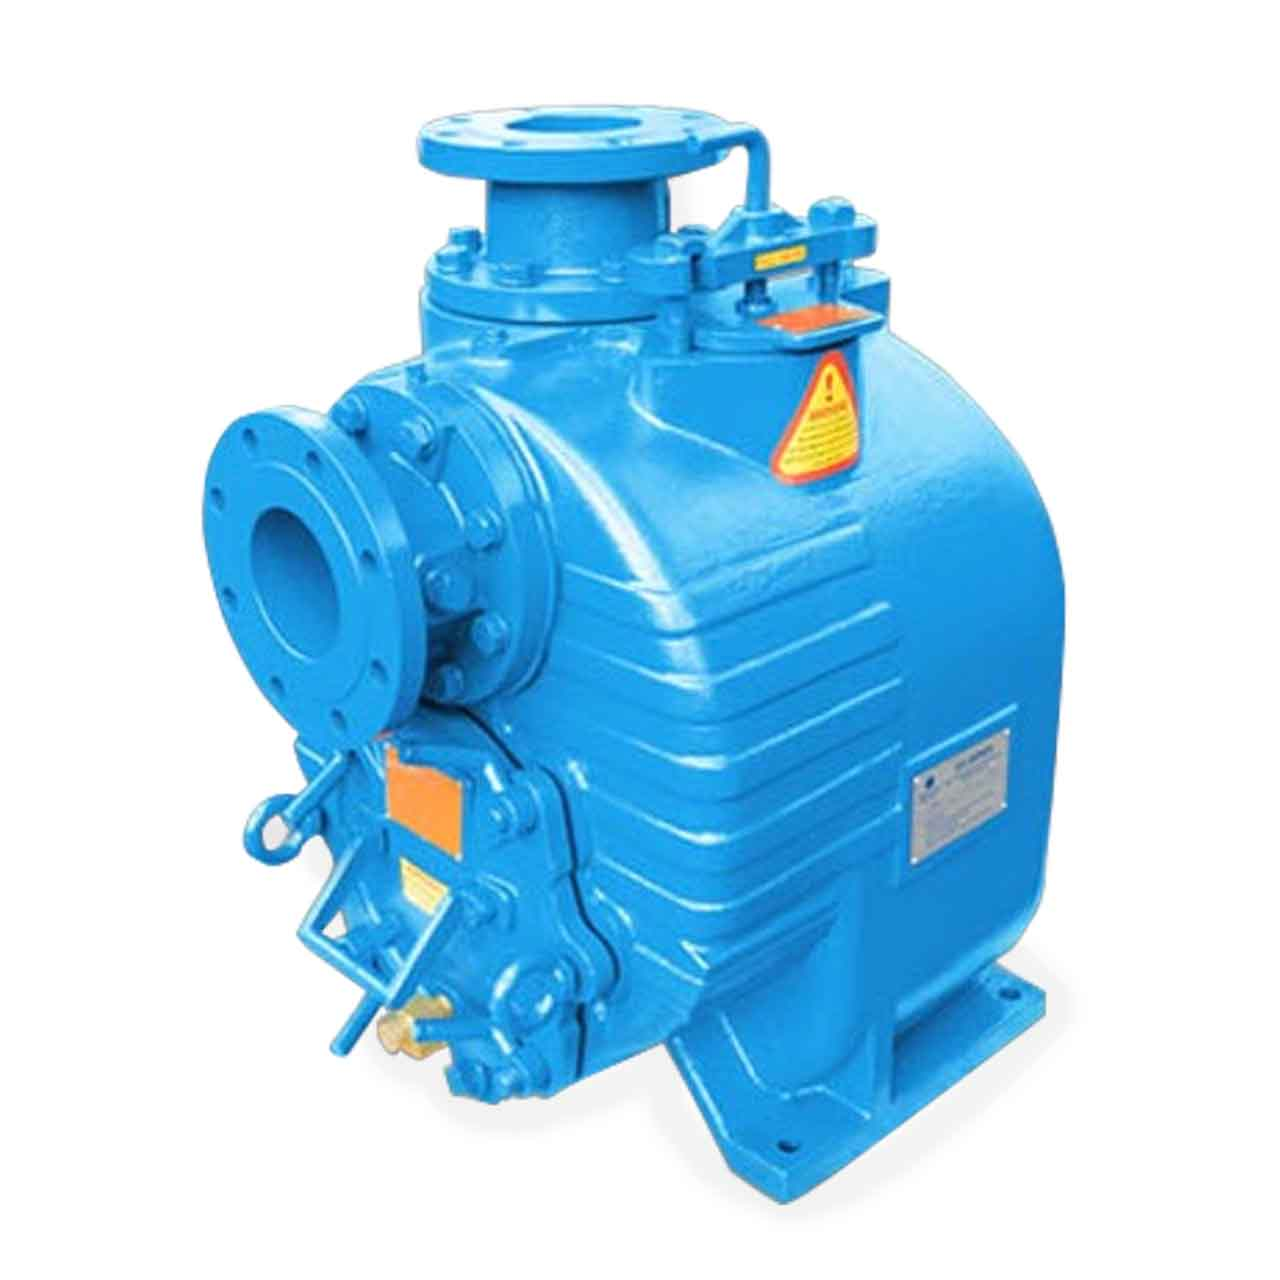 hight resolution of barmesa pumps barmesa sh4 u self priming centrifugal trash pump bms62040202